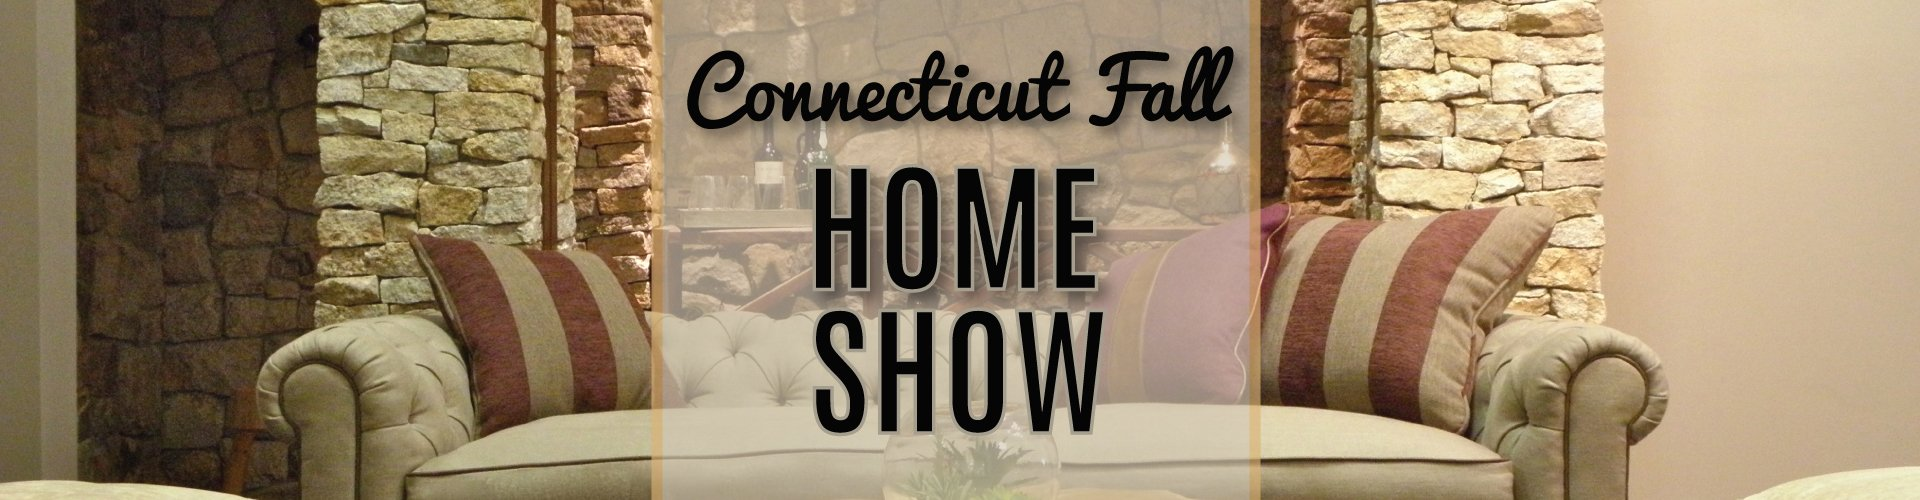 Fall ct home show 2018 connecticut home expo jenks productions Columbus home and garden show 2017